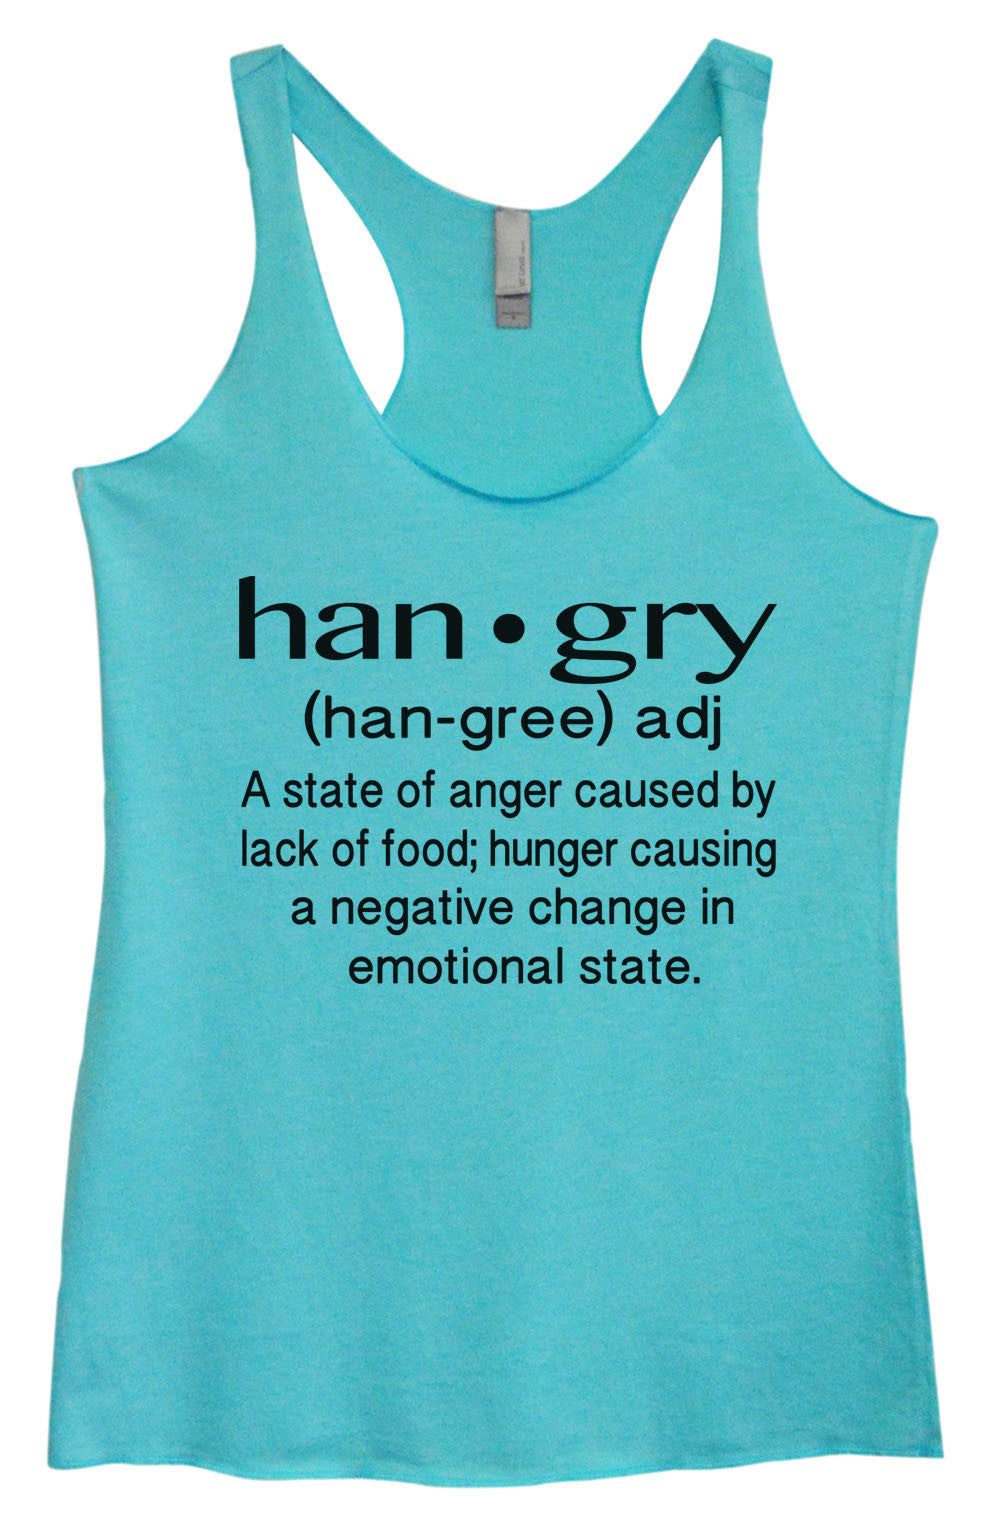 Womens Fashion Triblend Tank Top - Han.gry (Han-Gree) Adj A State Of Anger Caused By Lack Of Food; Hunger causing A Negative Change In Emotional State. - Tri-957 - Funny Shirts Tank Tops Burnouts and Triblends  - 1